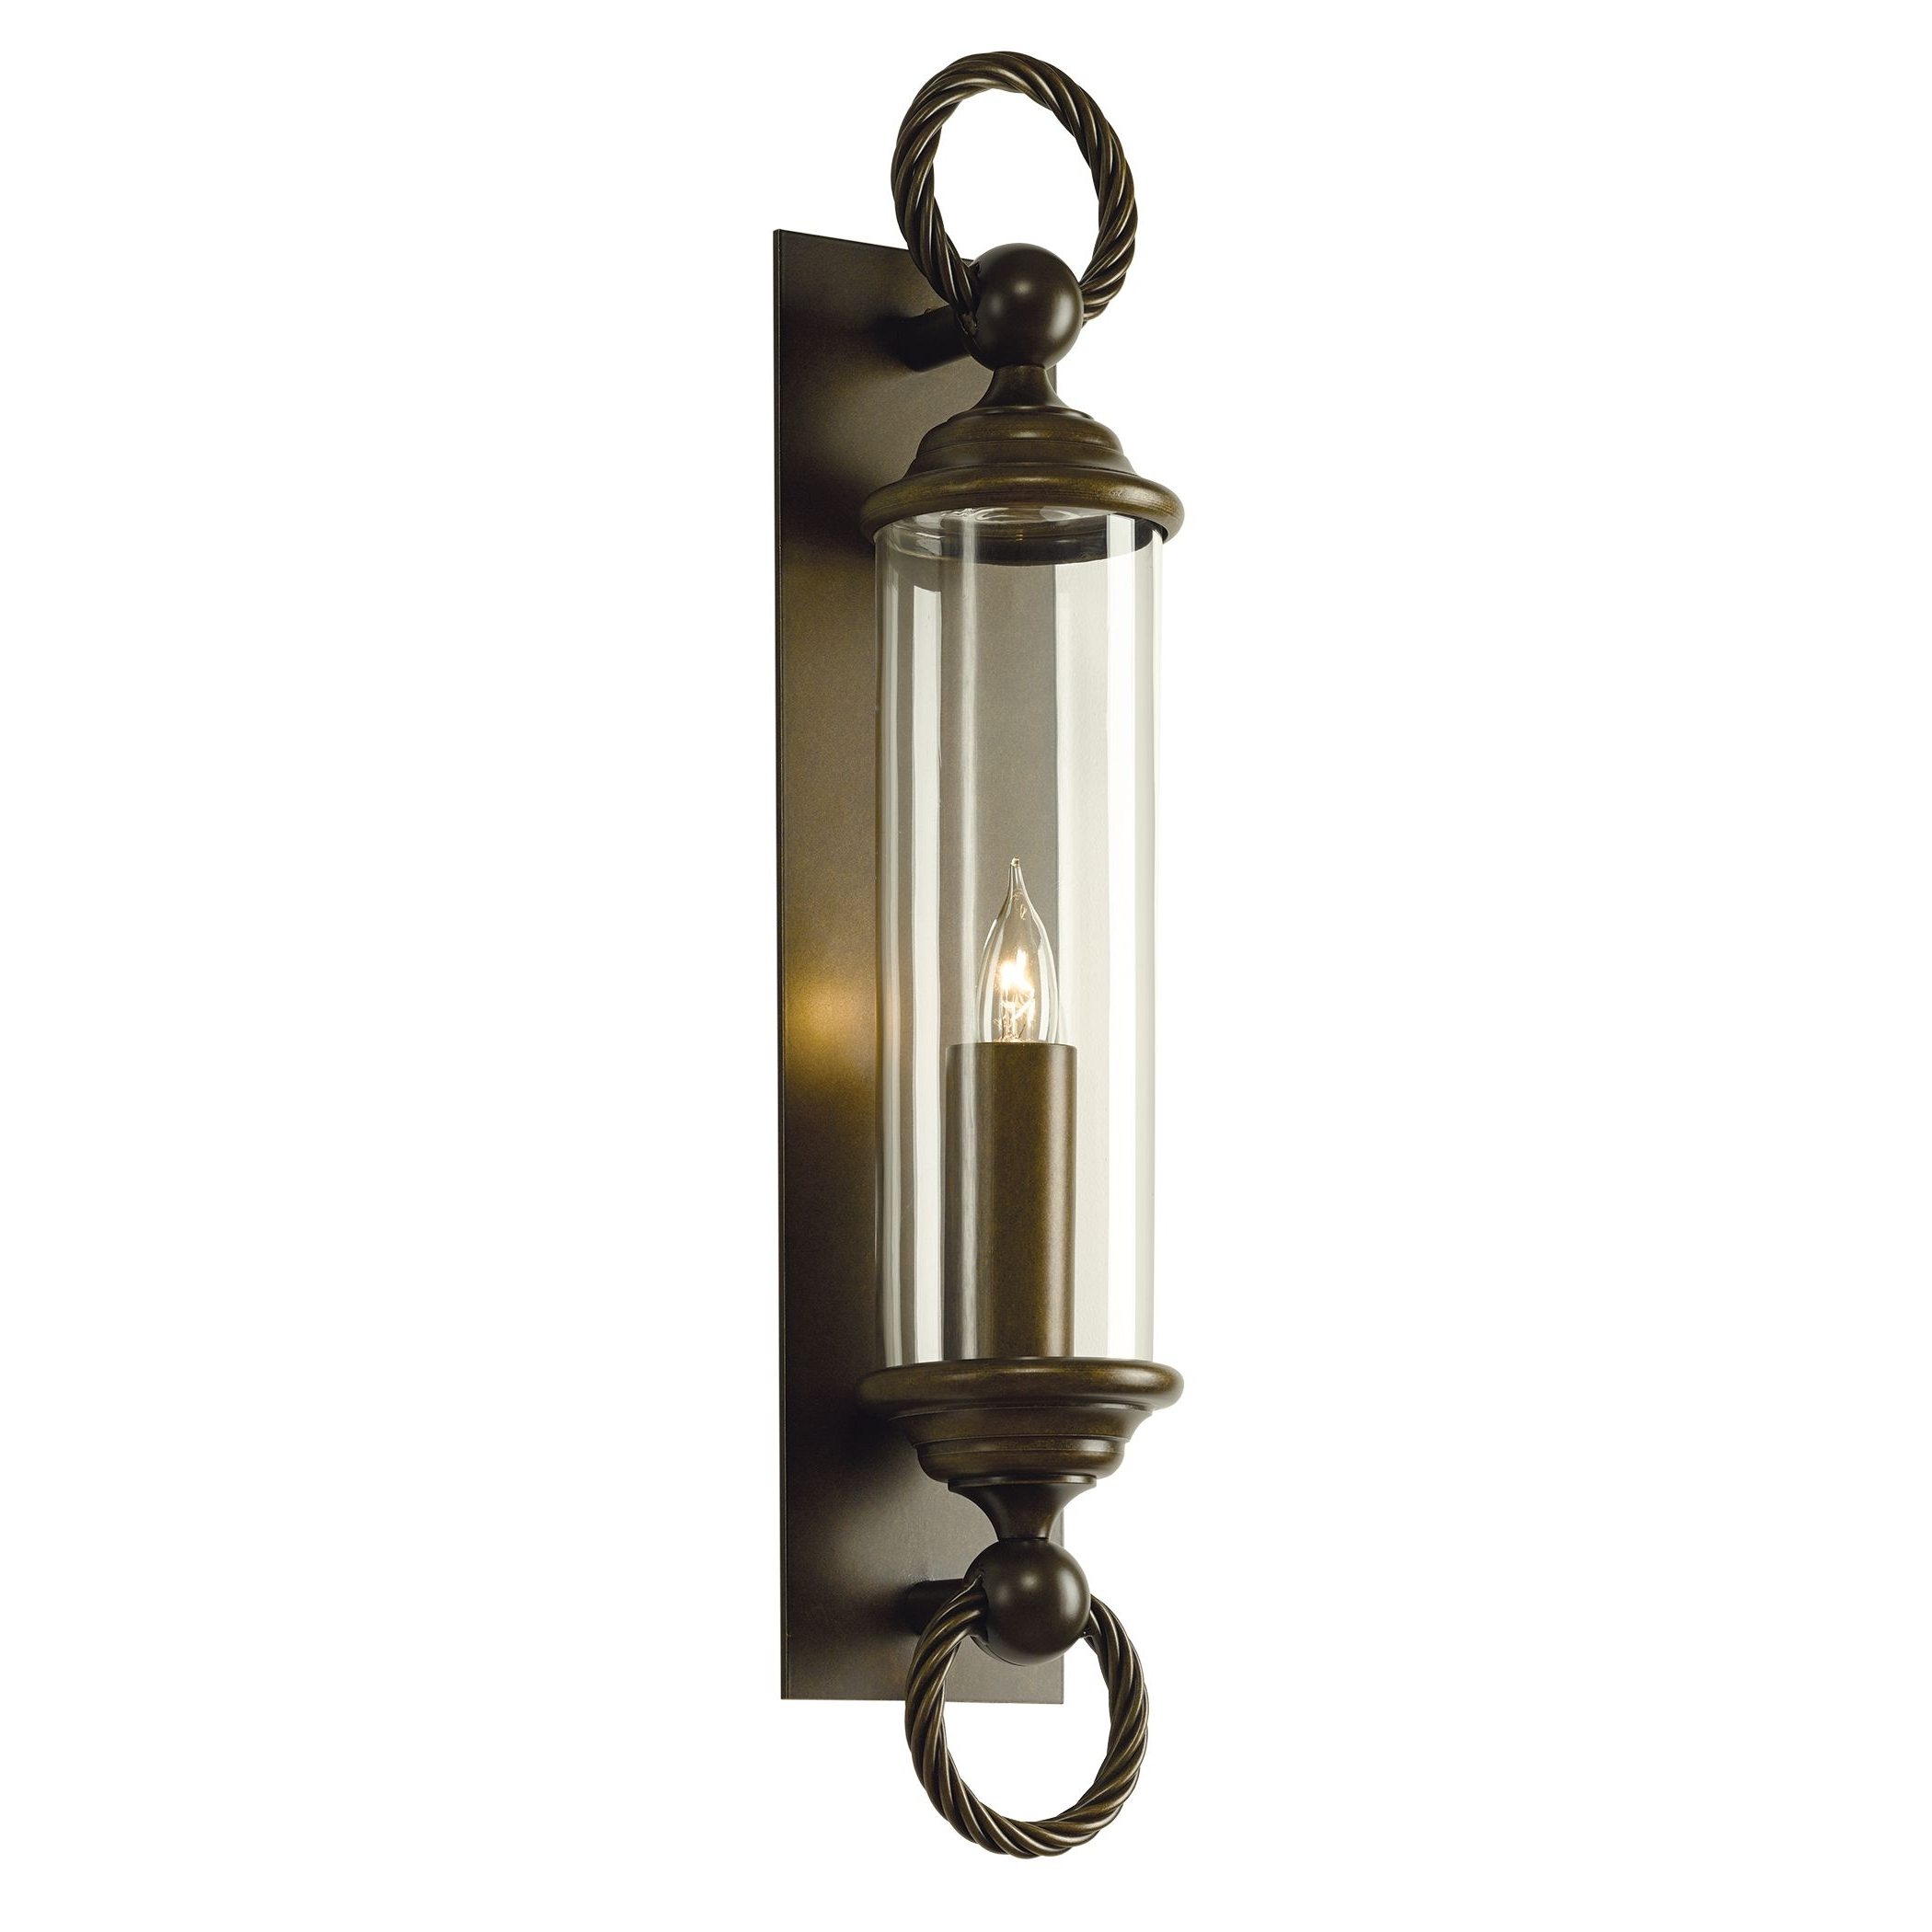 Large Outdoor Wall Lanterns Pertaining To 2019 Cavo Large Outdoor Wall Sconce – Hubbardton Forge (Gallery 7 of 20)